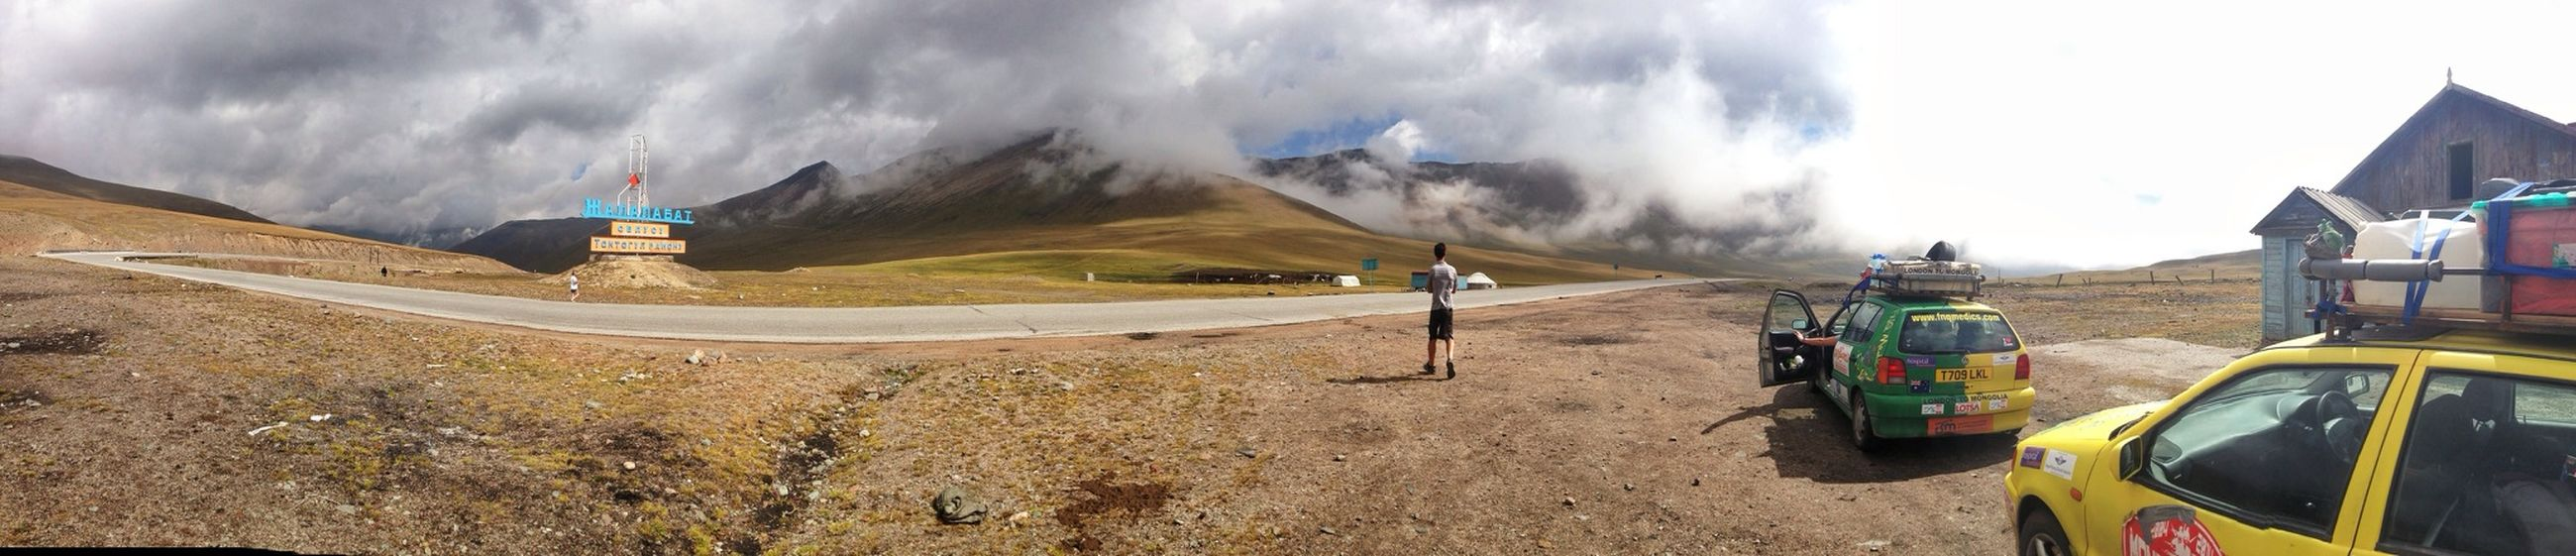 It truly is an amazing world The Montains Of Krygyzstan Pamir Highway Travel Photography Mongol Rally 2014